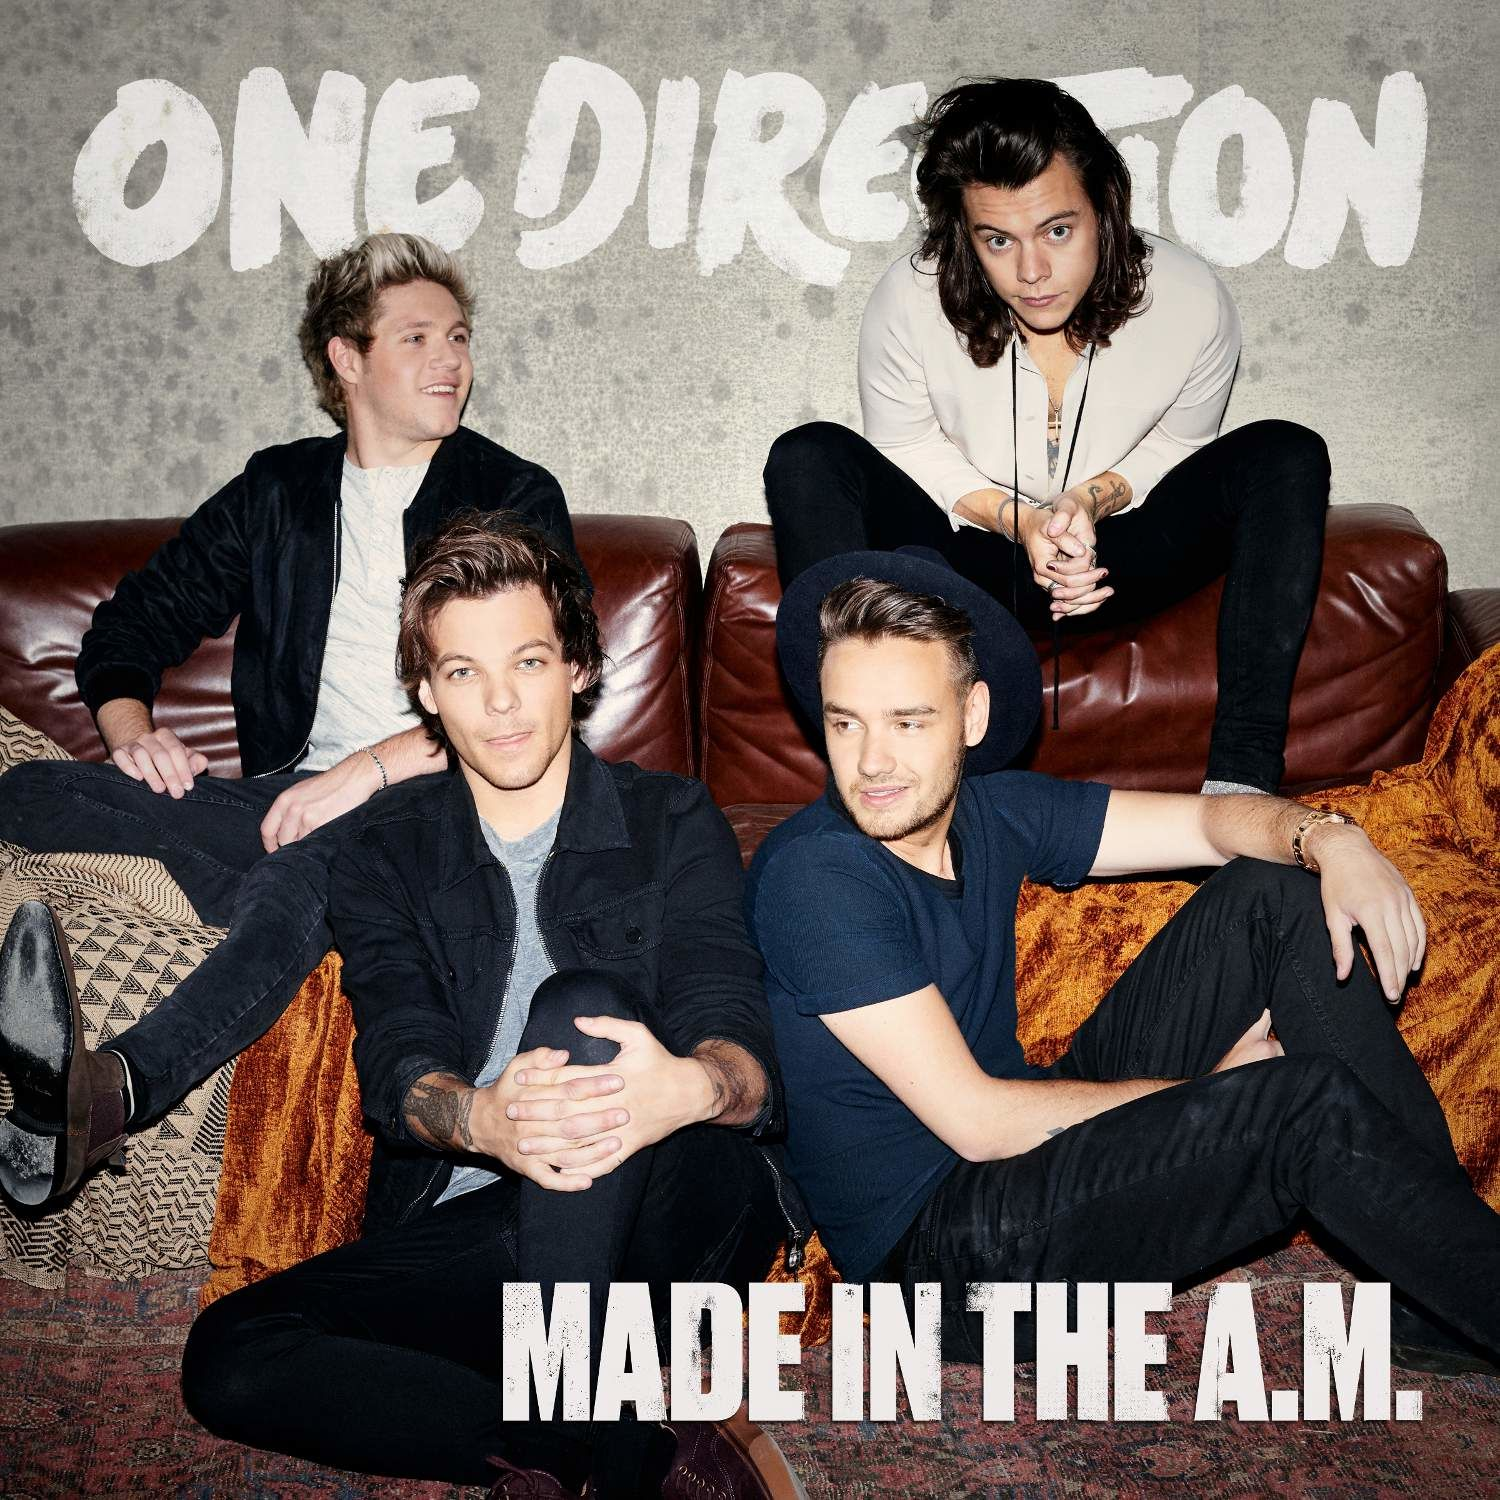 One Direction Album Made In The A.M. Lyrics